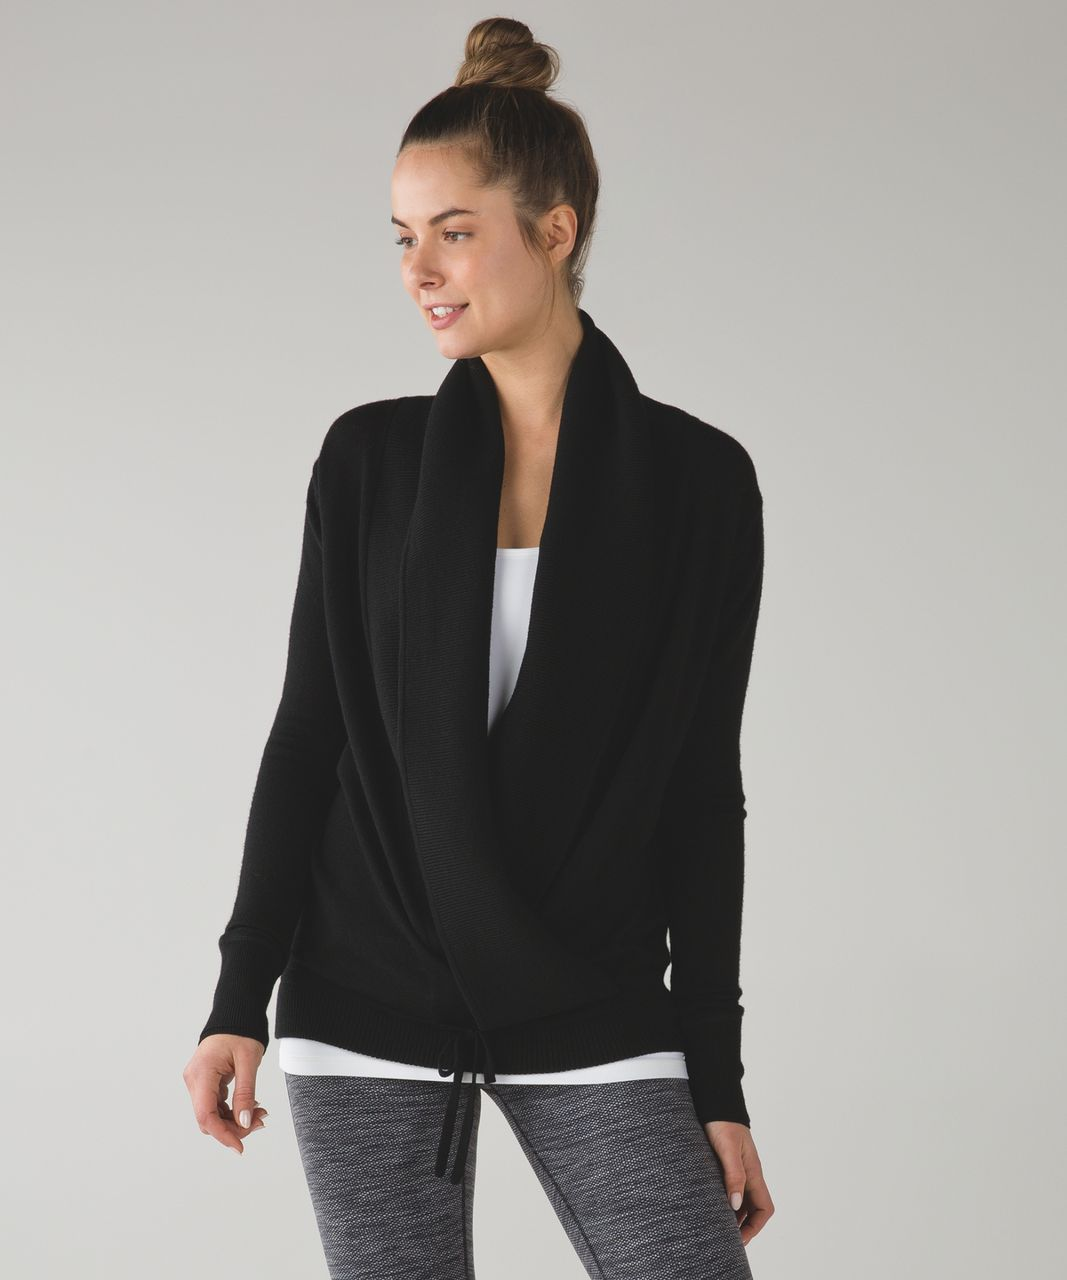 Lululemon Done Your Asana Pullover - Black